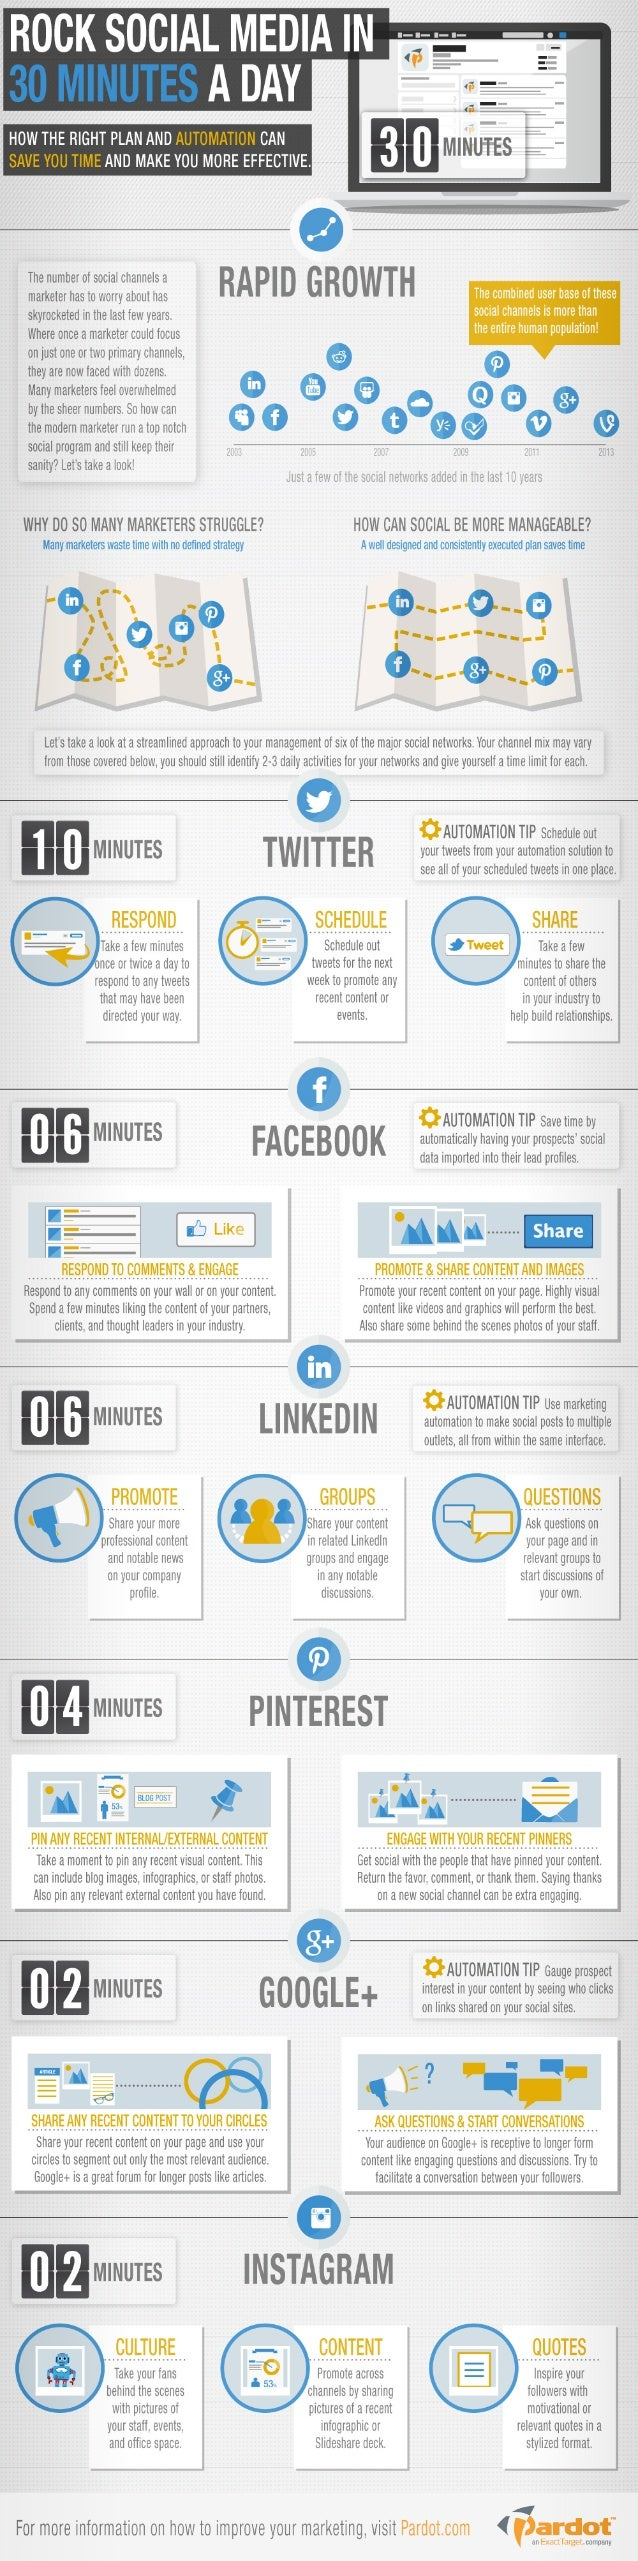 Rock Social Media in 30 Minutes a Day [Infographic]